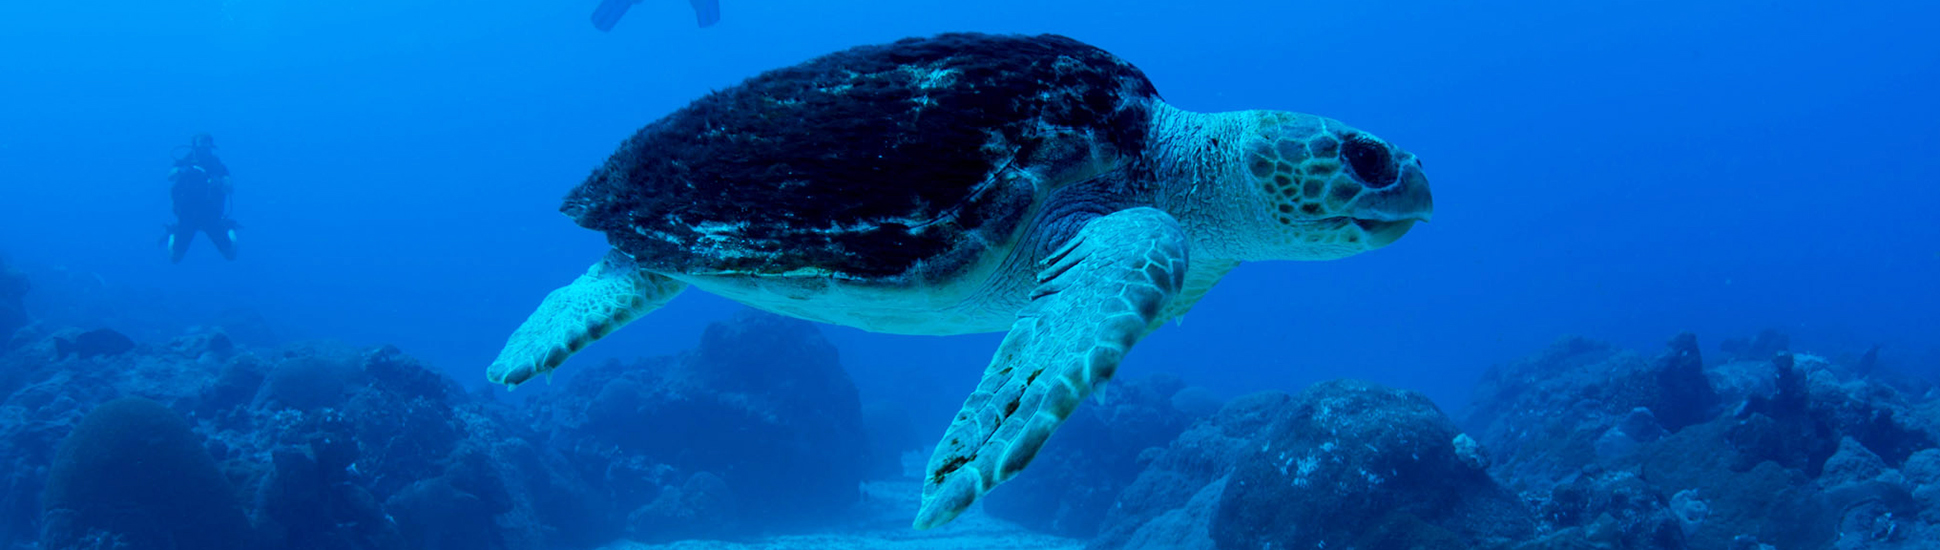 A loggerhead turtle swimming by divers in the Gulf of Mexico.